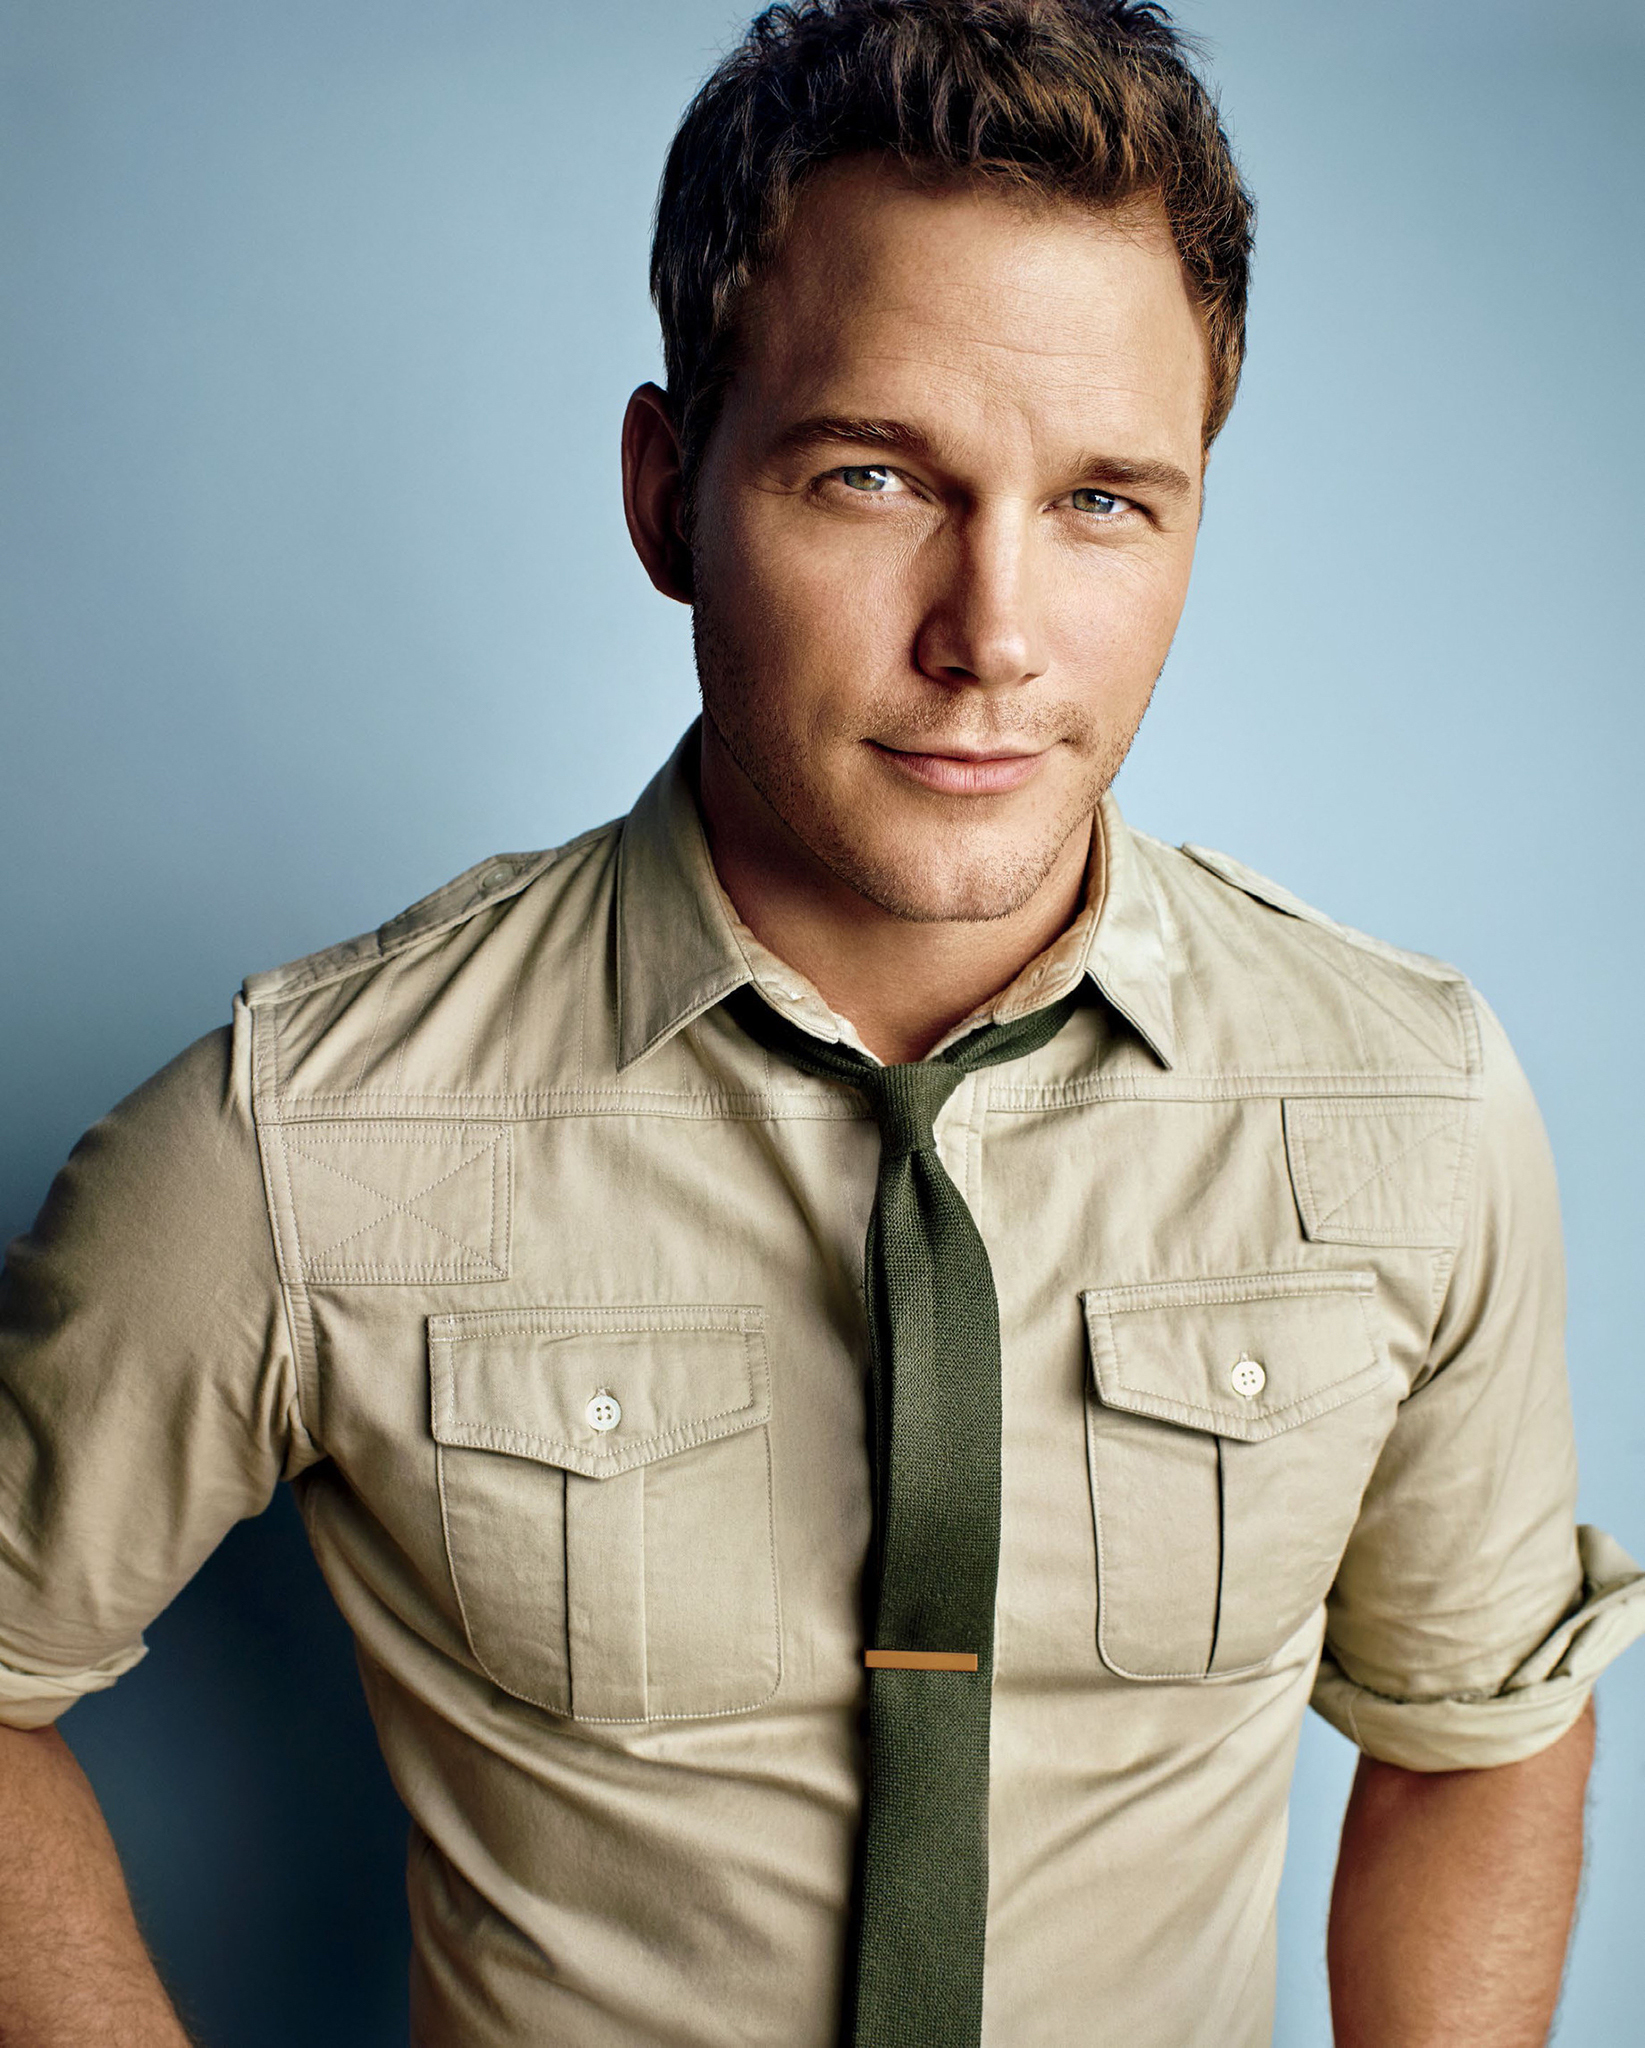 Chris Pratt photo #663751